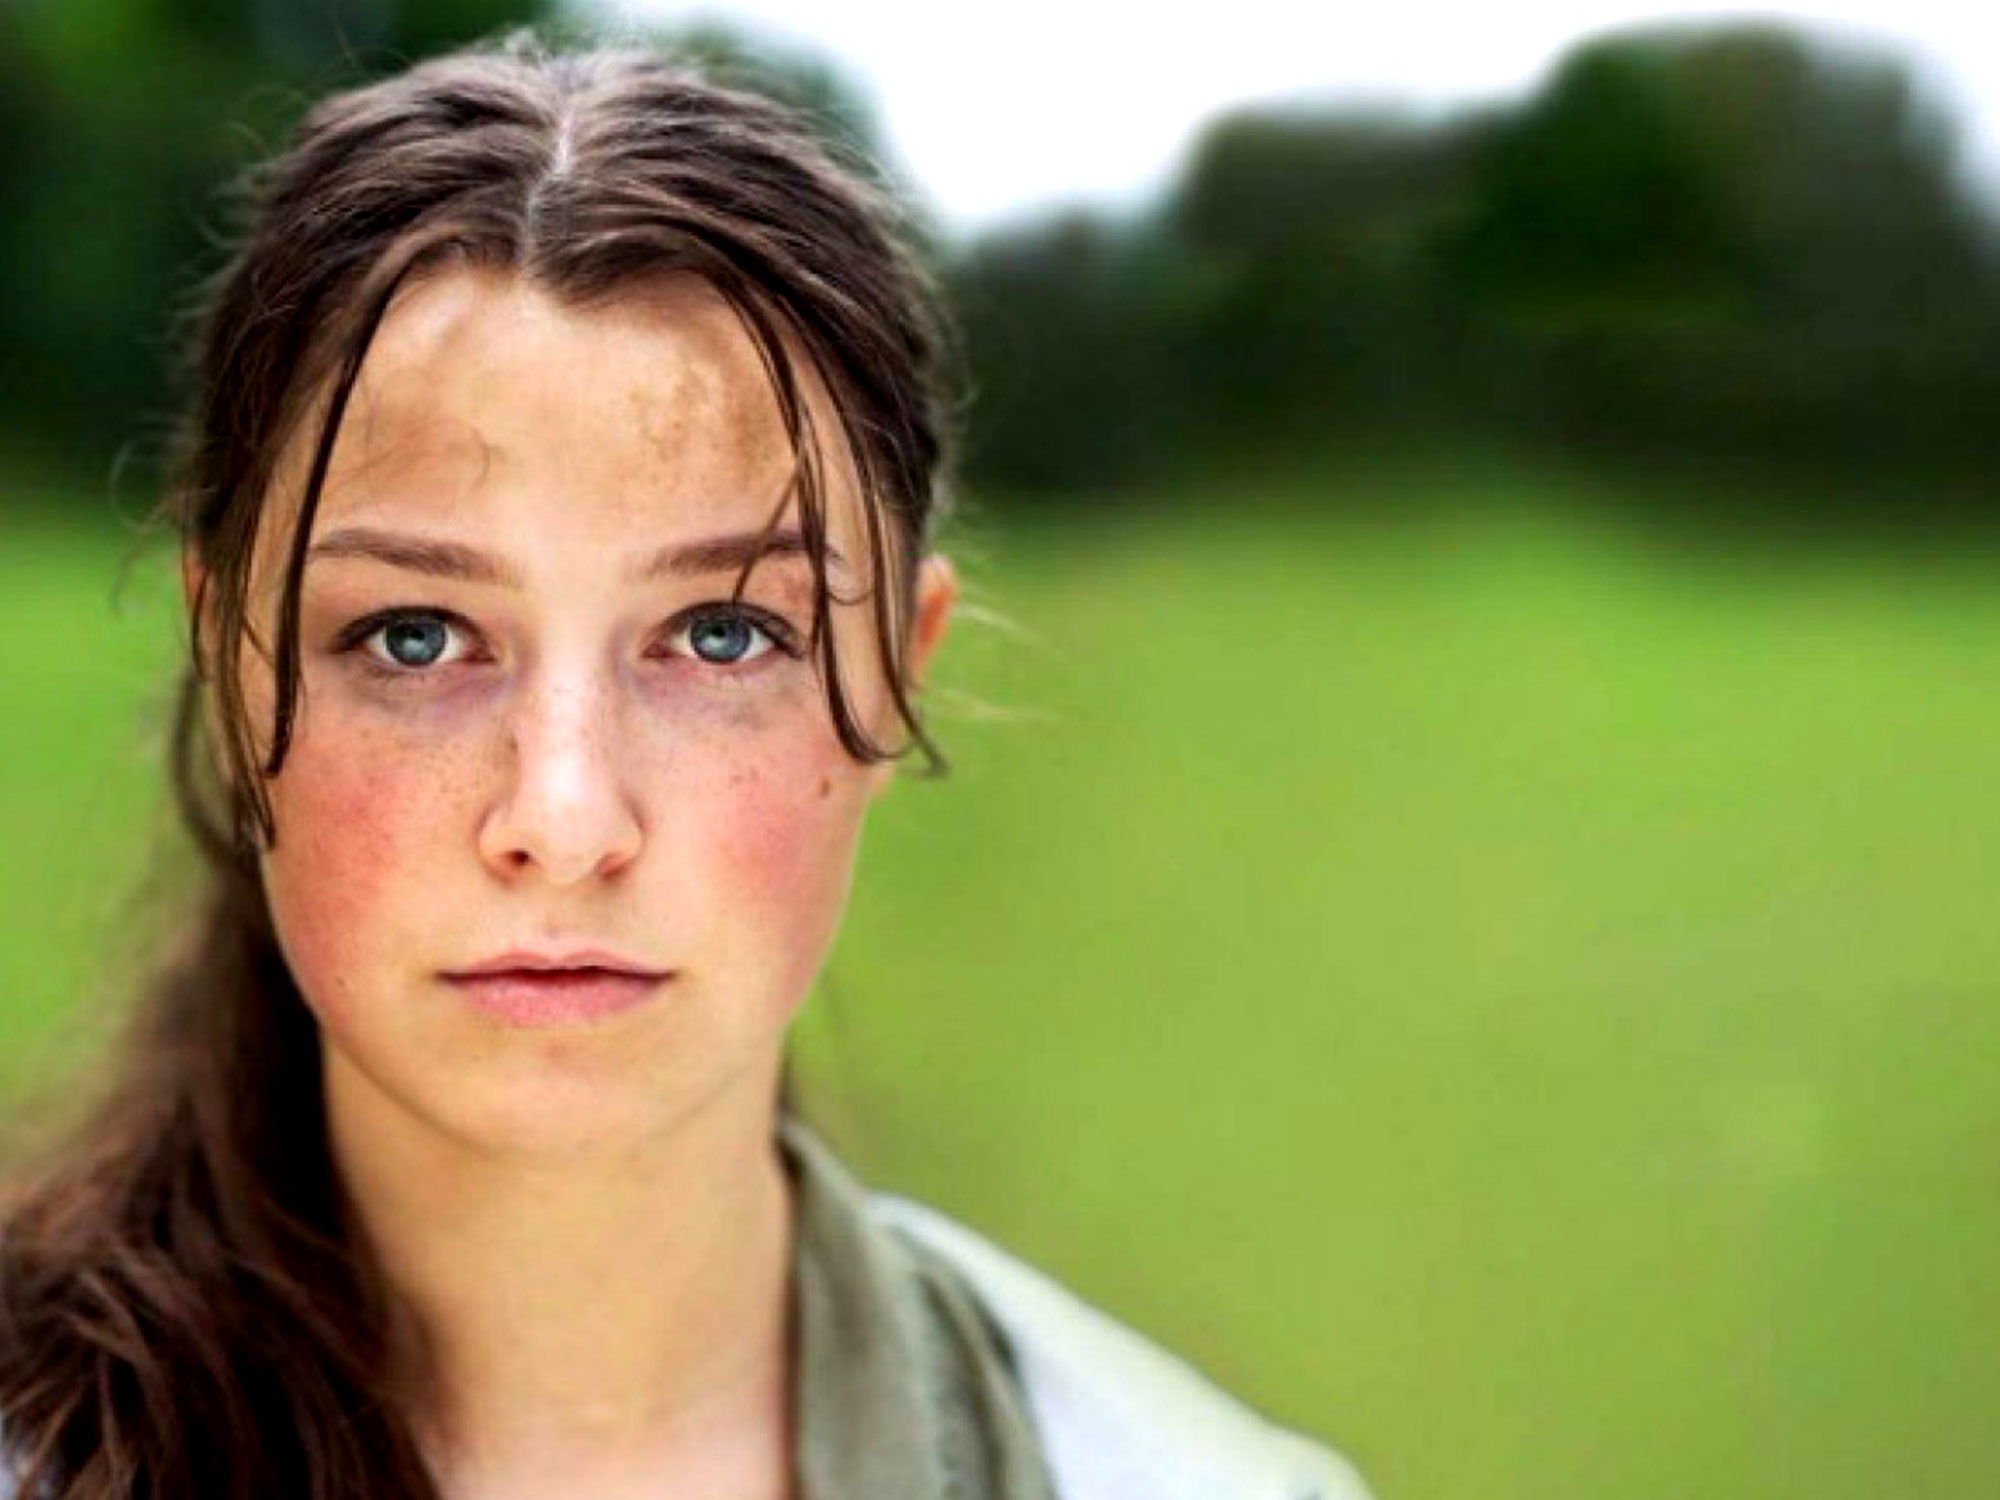 Utøya – July 22 review – A ghoulish fictionalisation of real-life horror